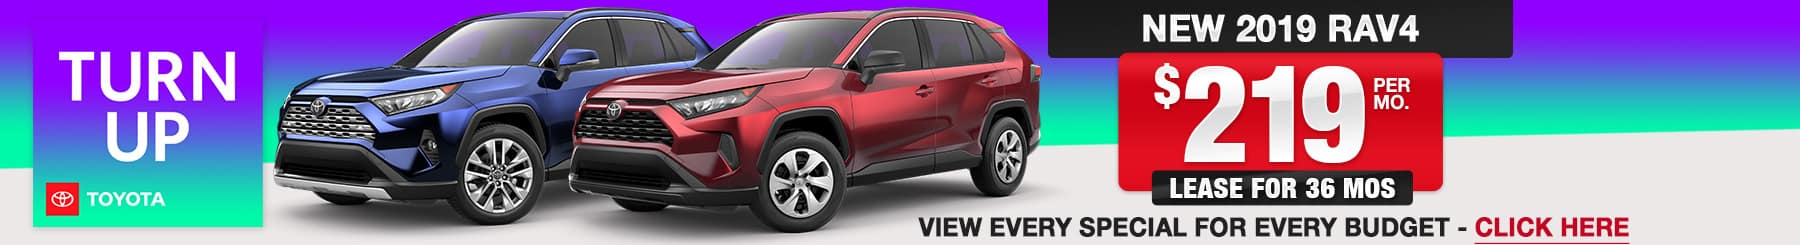 2019 RAV4 Lease or Finance Offers